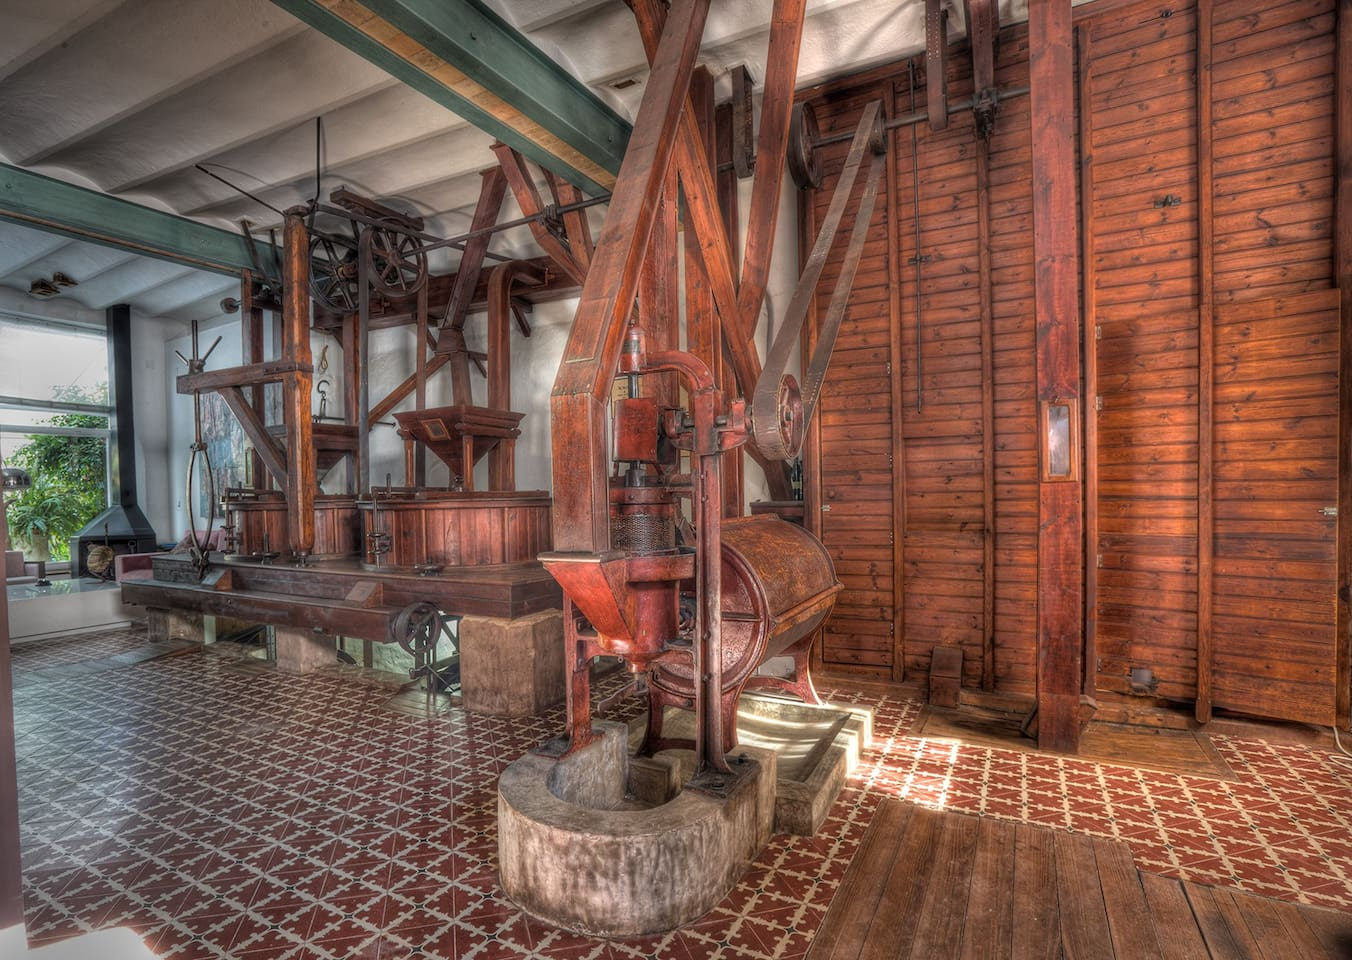 Mill equipment - Maquinaria de la fábrica de harina